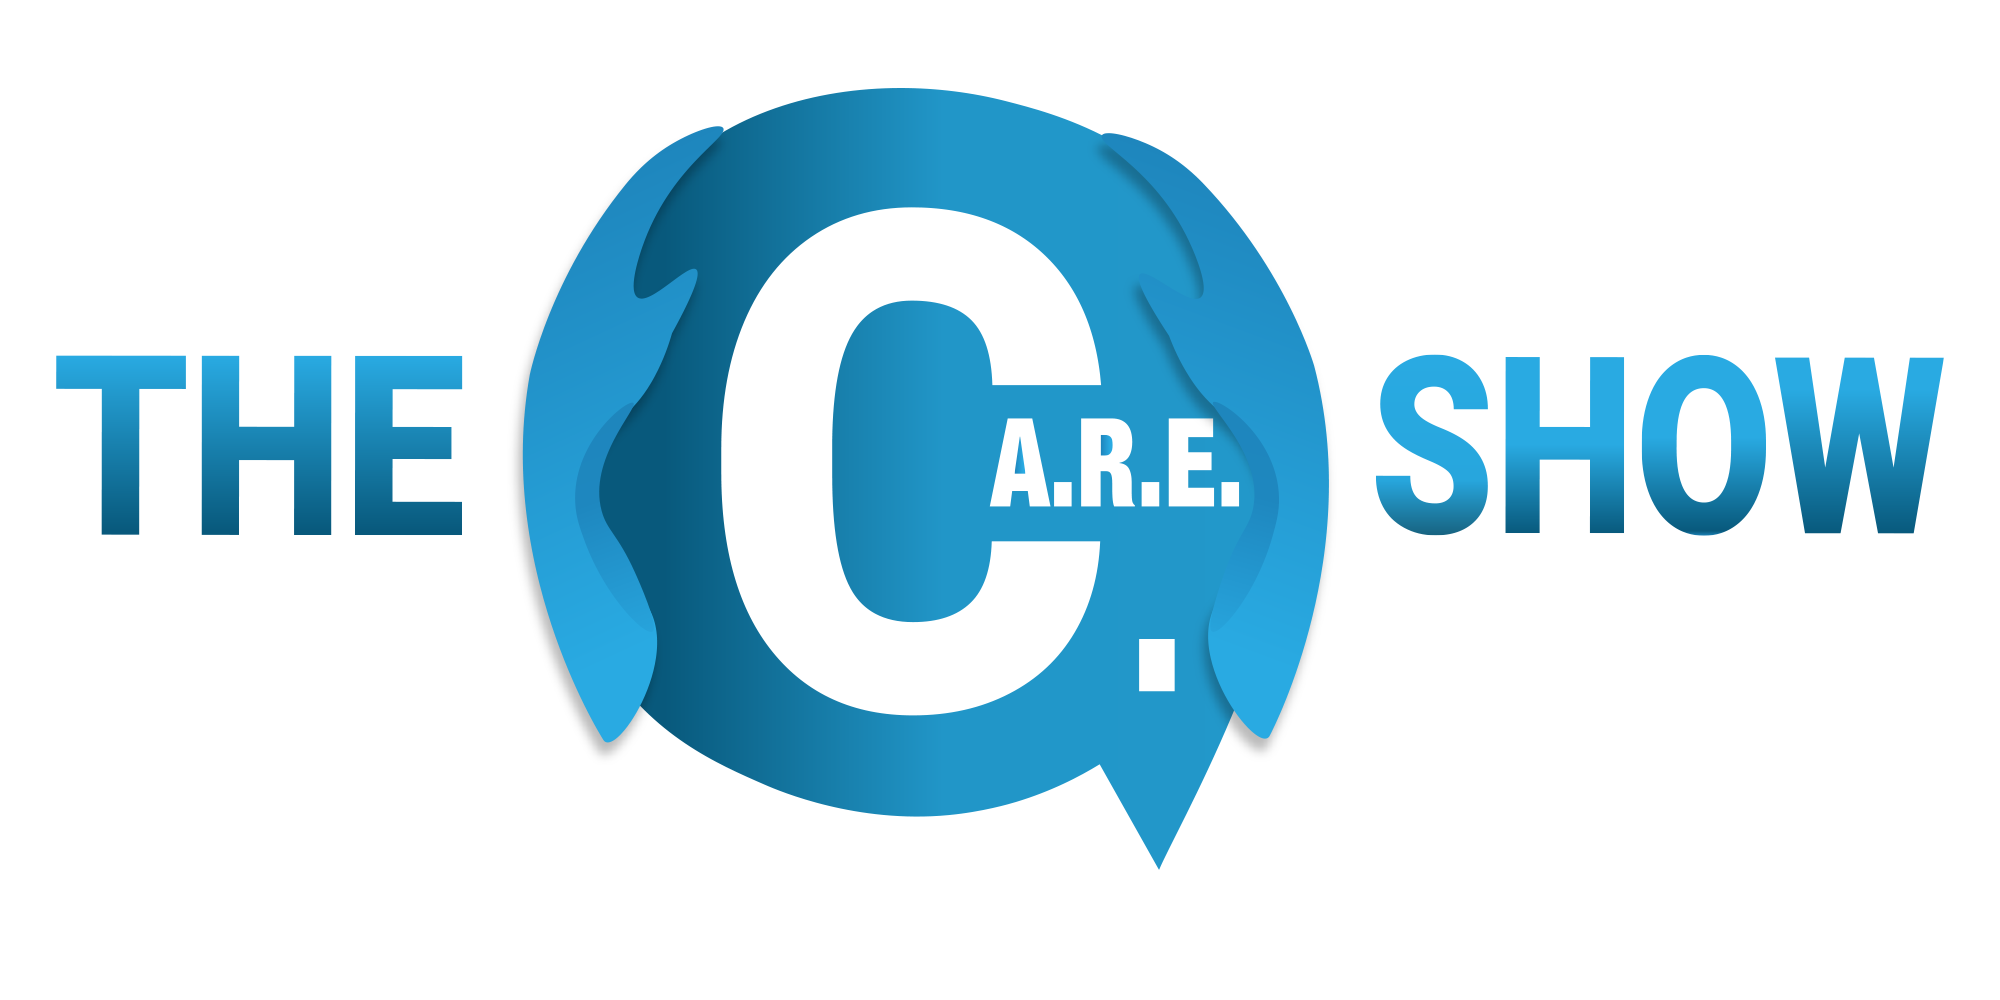 TheCareShow_Logo_Edited